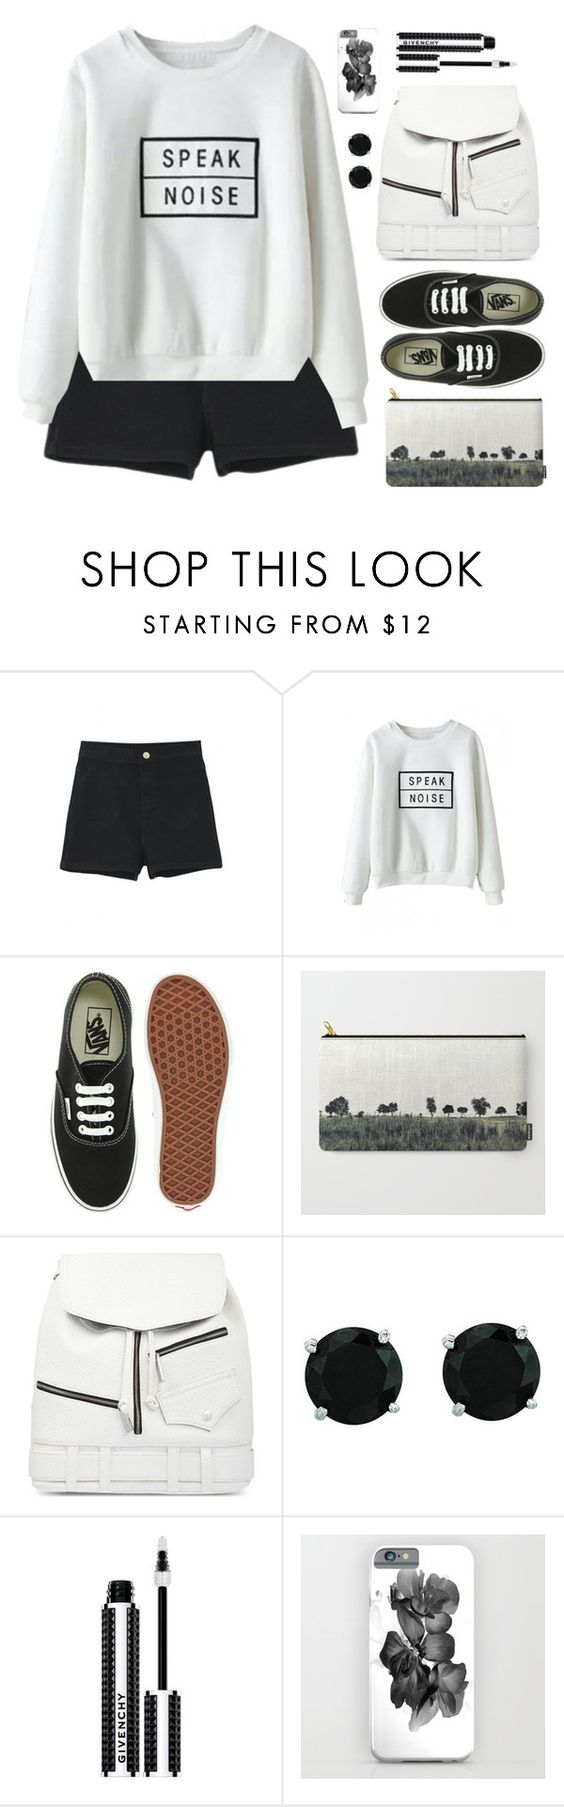 """""""Speak _ beautiful halo"""" by by-jwp ❤ liked on Polyvore featuring Vans, Skinnydip, BillyTheTree, Givenchy, blackandwhite and beautifulhalo"""